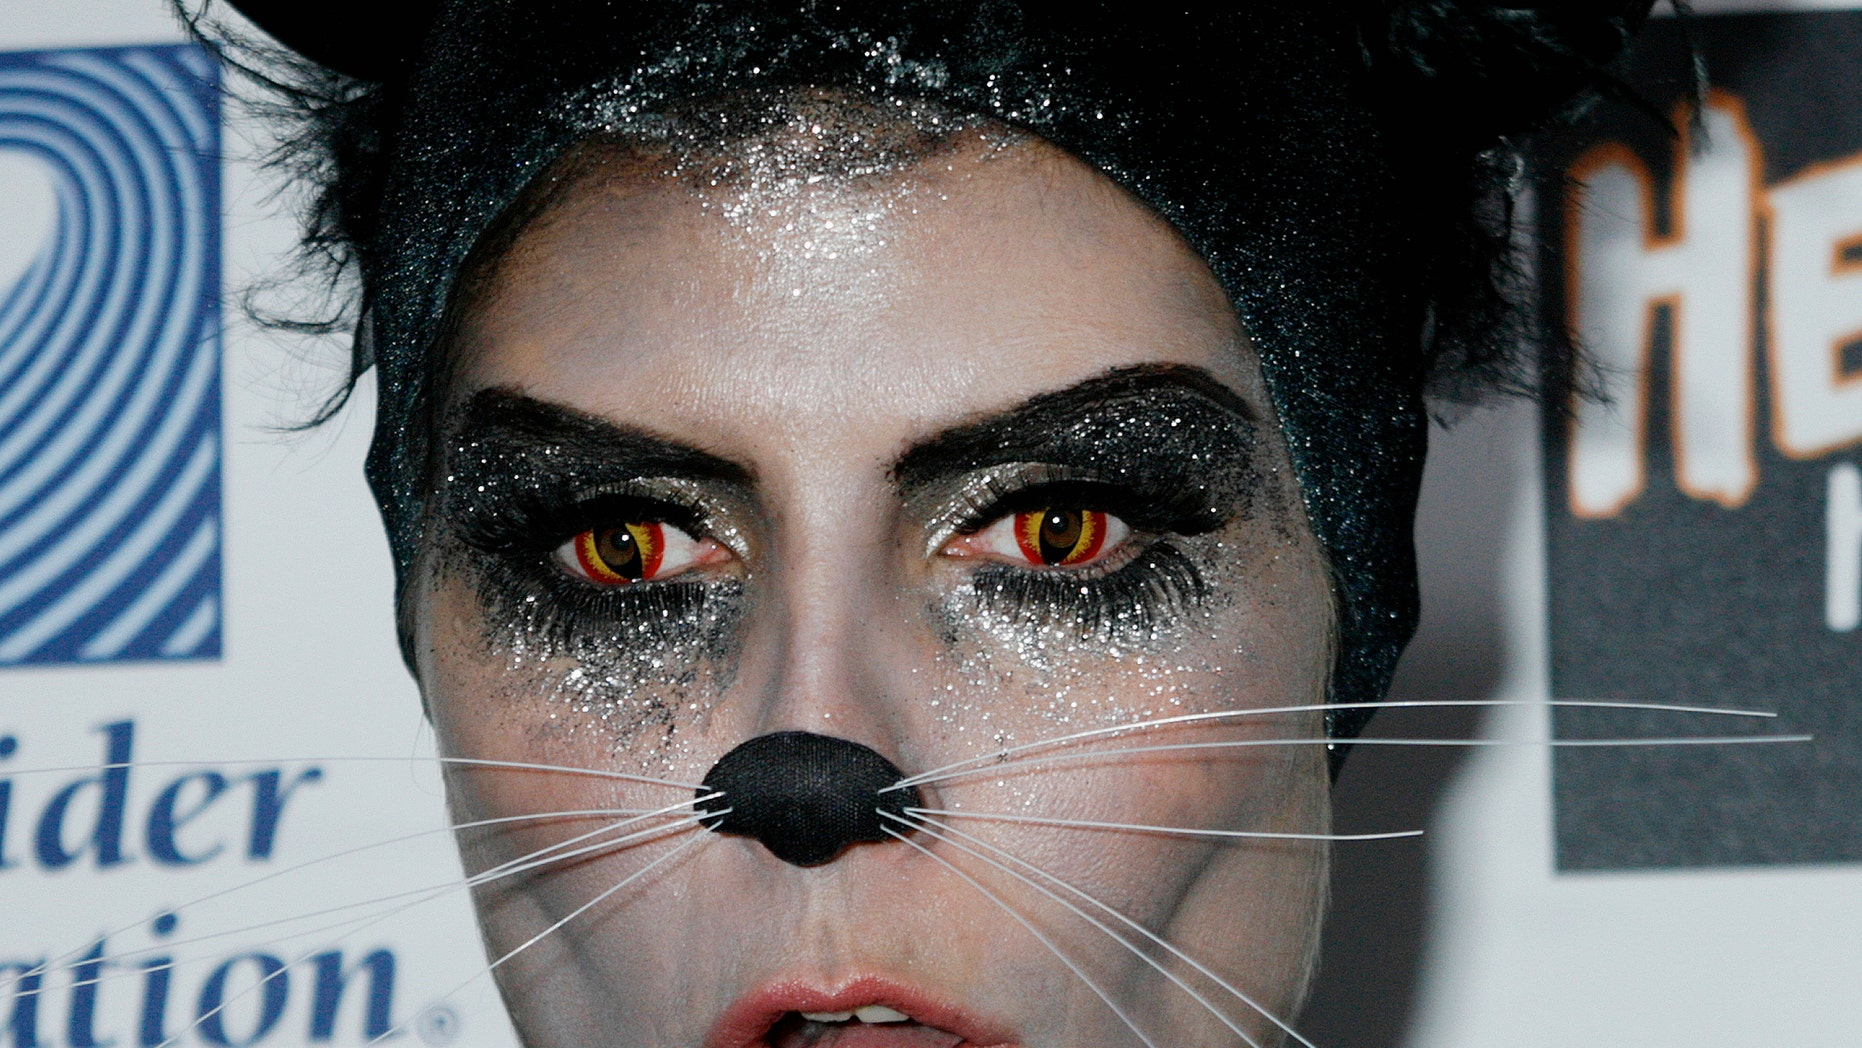 dfb7b8b2ae Heidi Klum wears a cat costume with special contact lenses to change her eye  color at